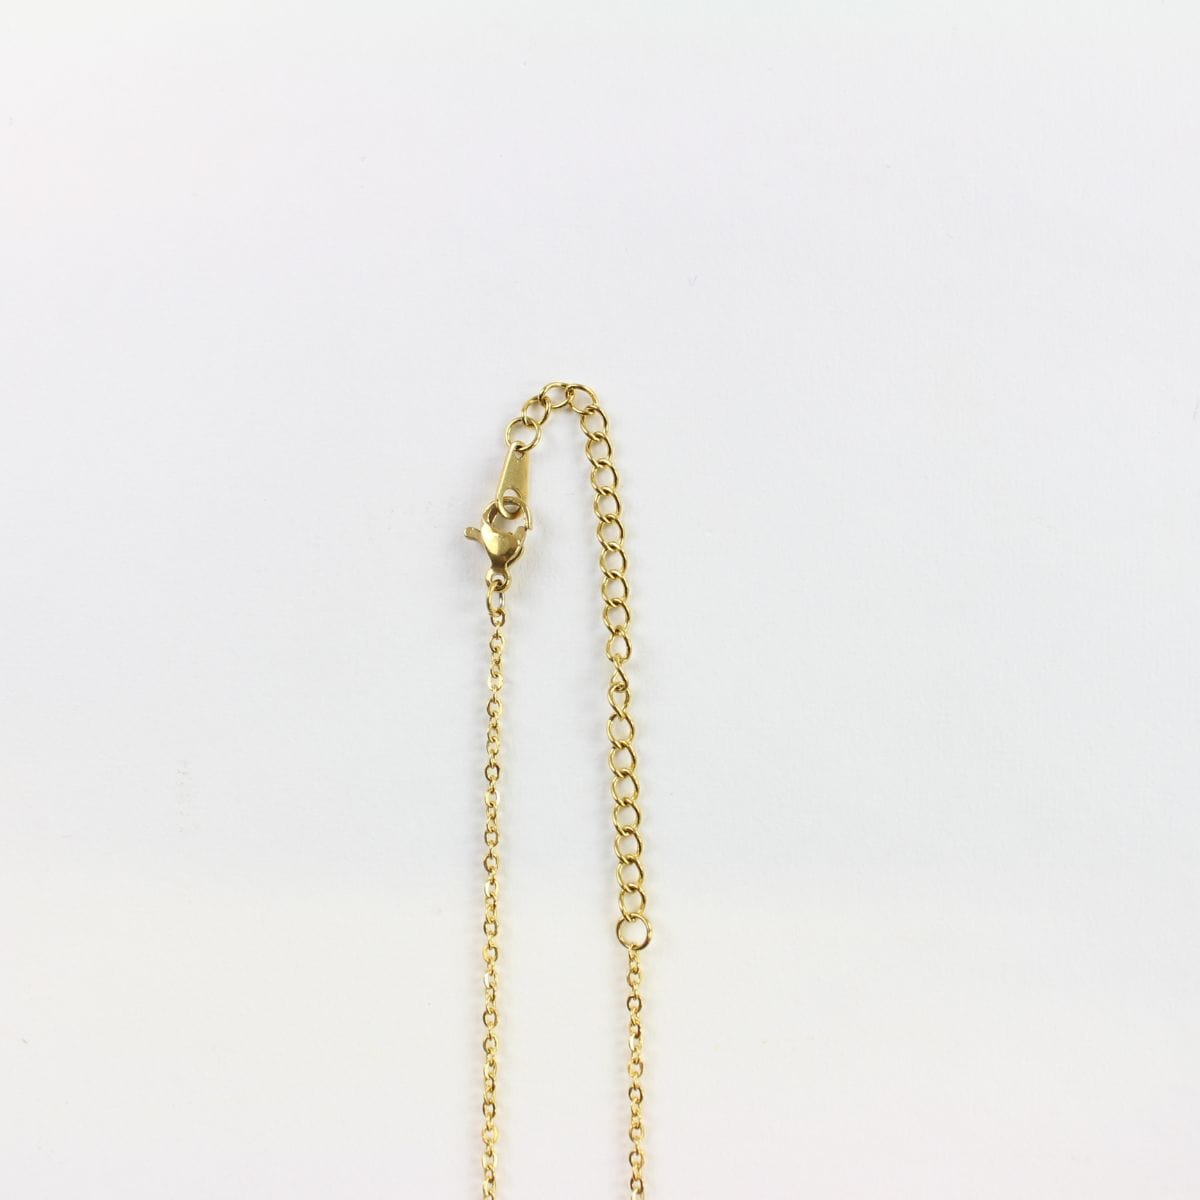 louis vuitton gold necklace - SaruGeneral